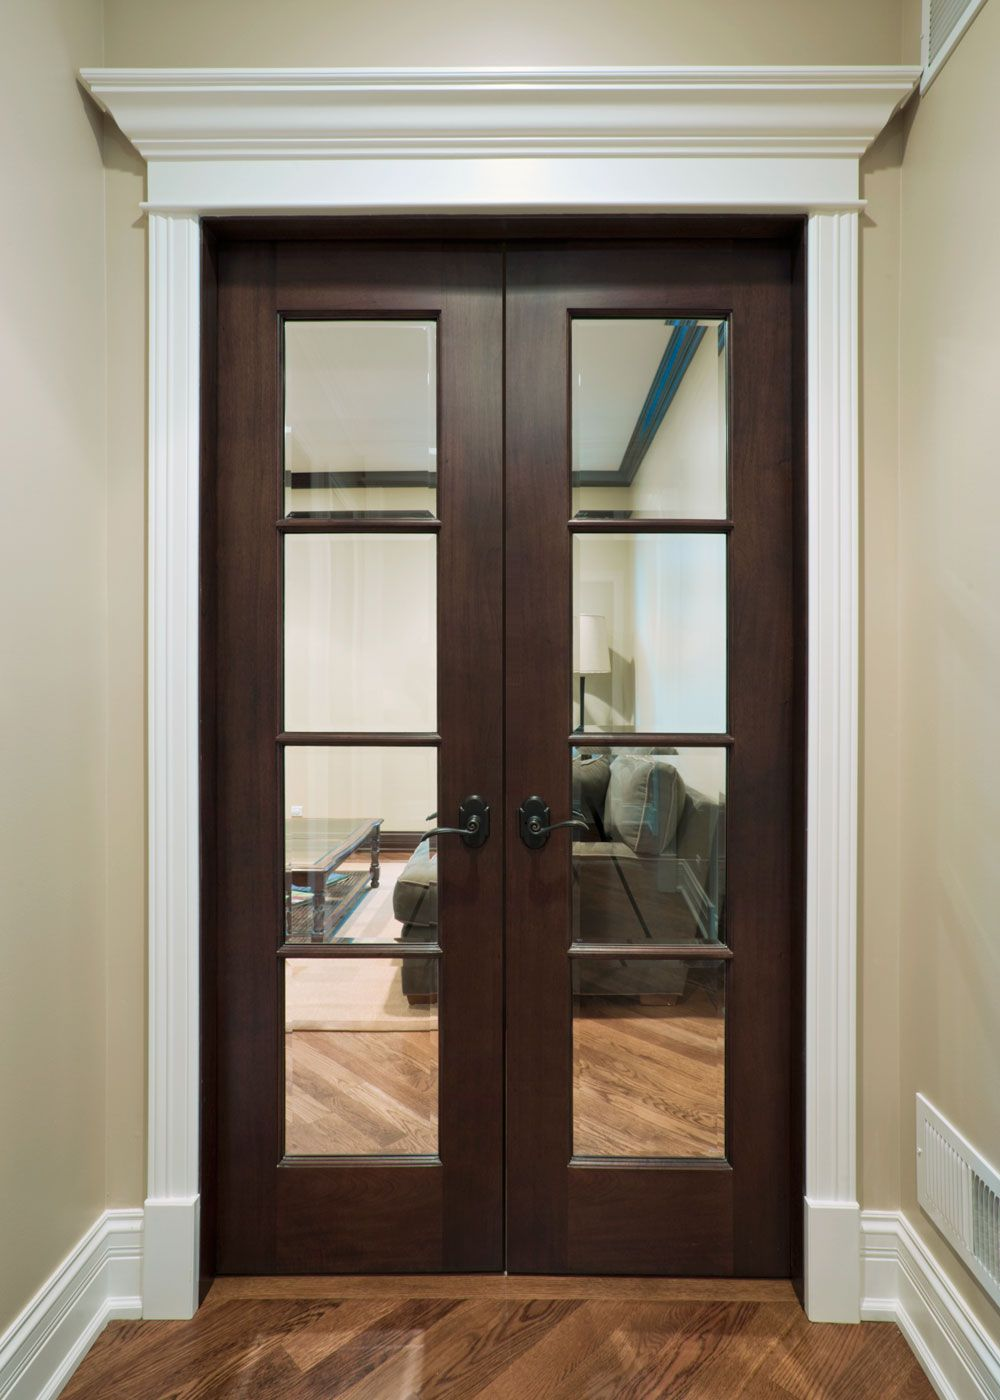 Interior doors double - Custom Interior Doors In Any Style Size Or Shape Custom Solid Wood Interior Doors Traditional Design Doors By Doors For Builders Inc